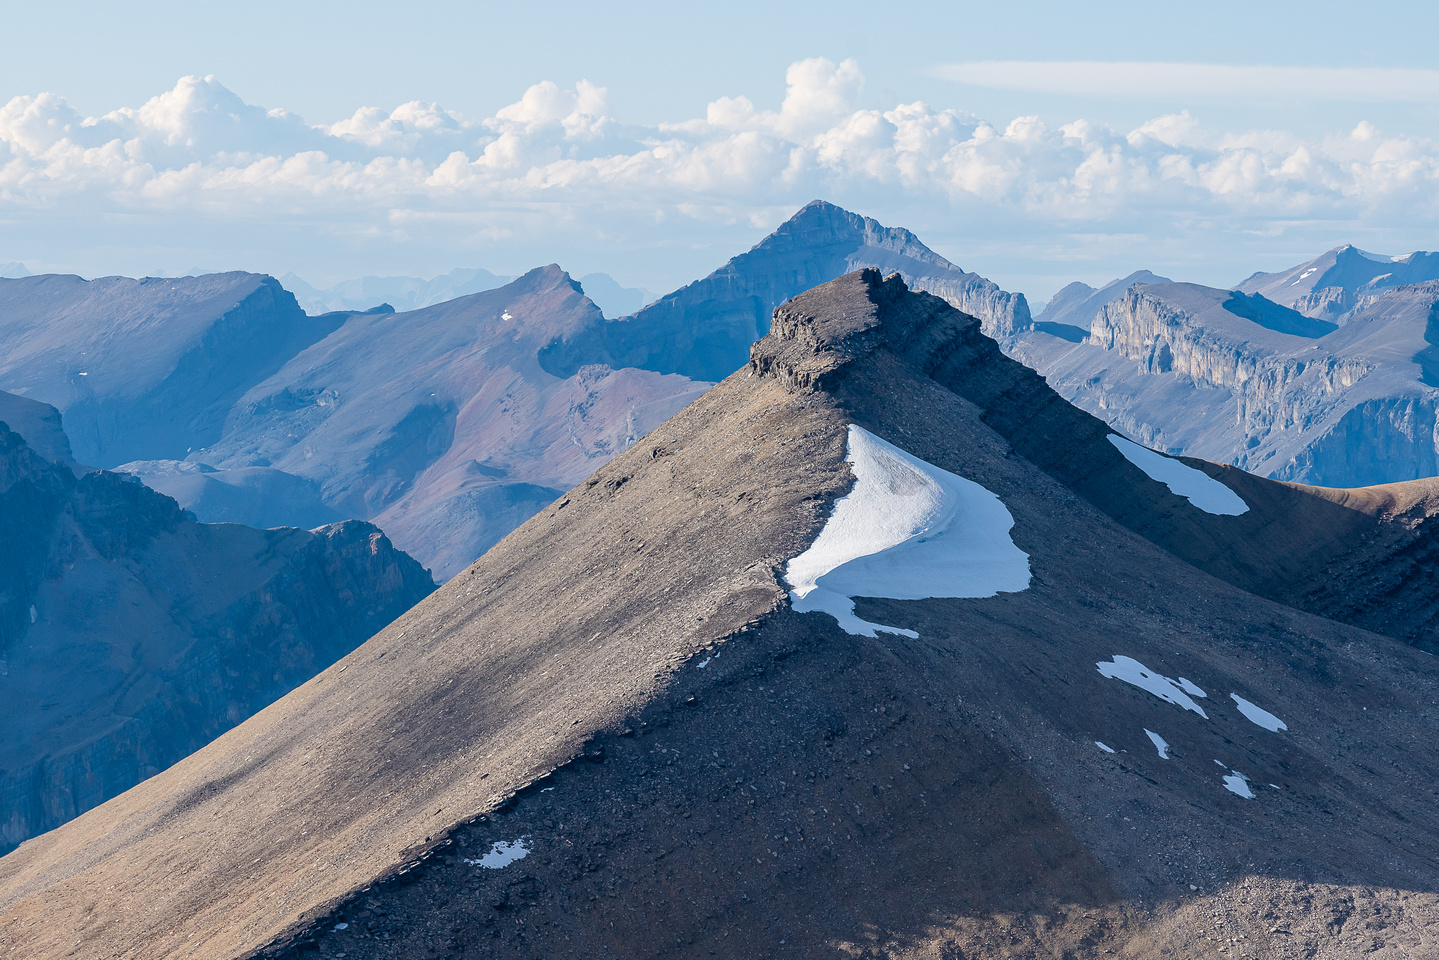 Icefall Peak rises over the north outlier.